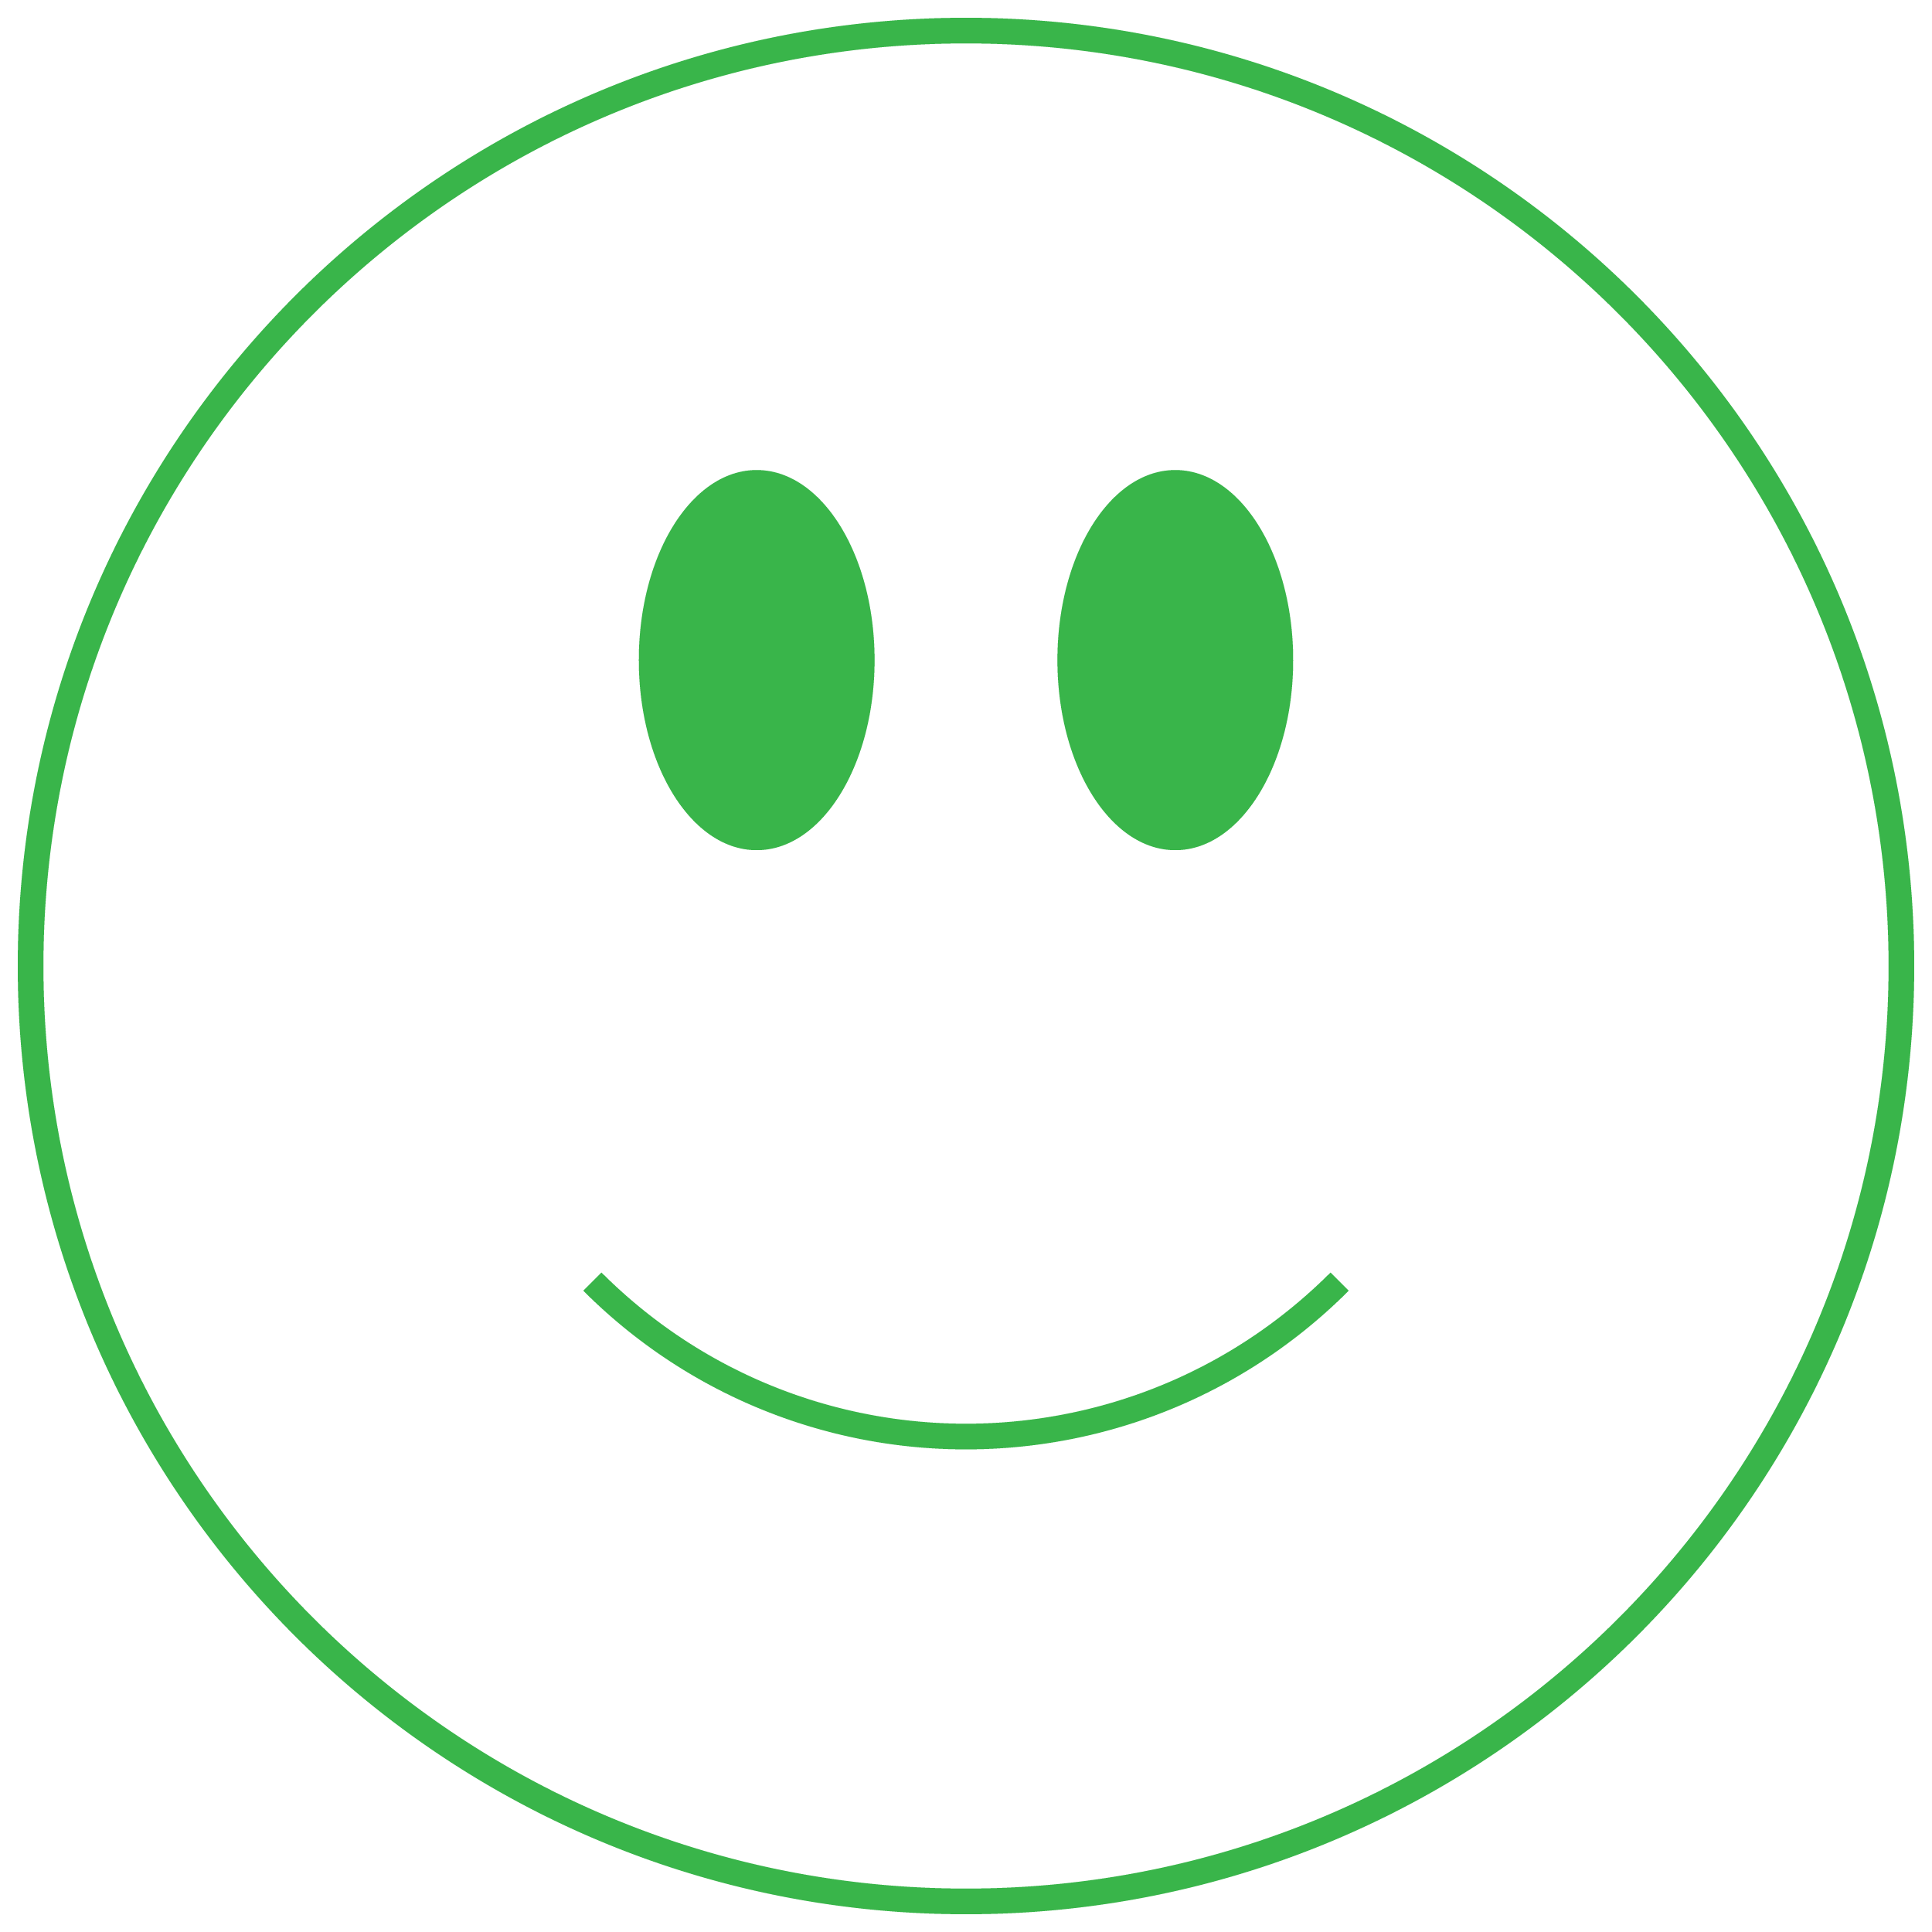 Green smiley face graphic